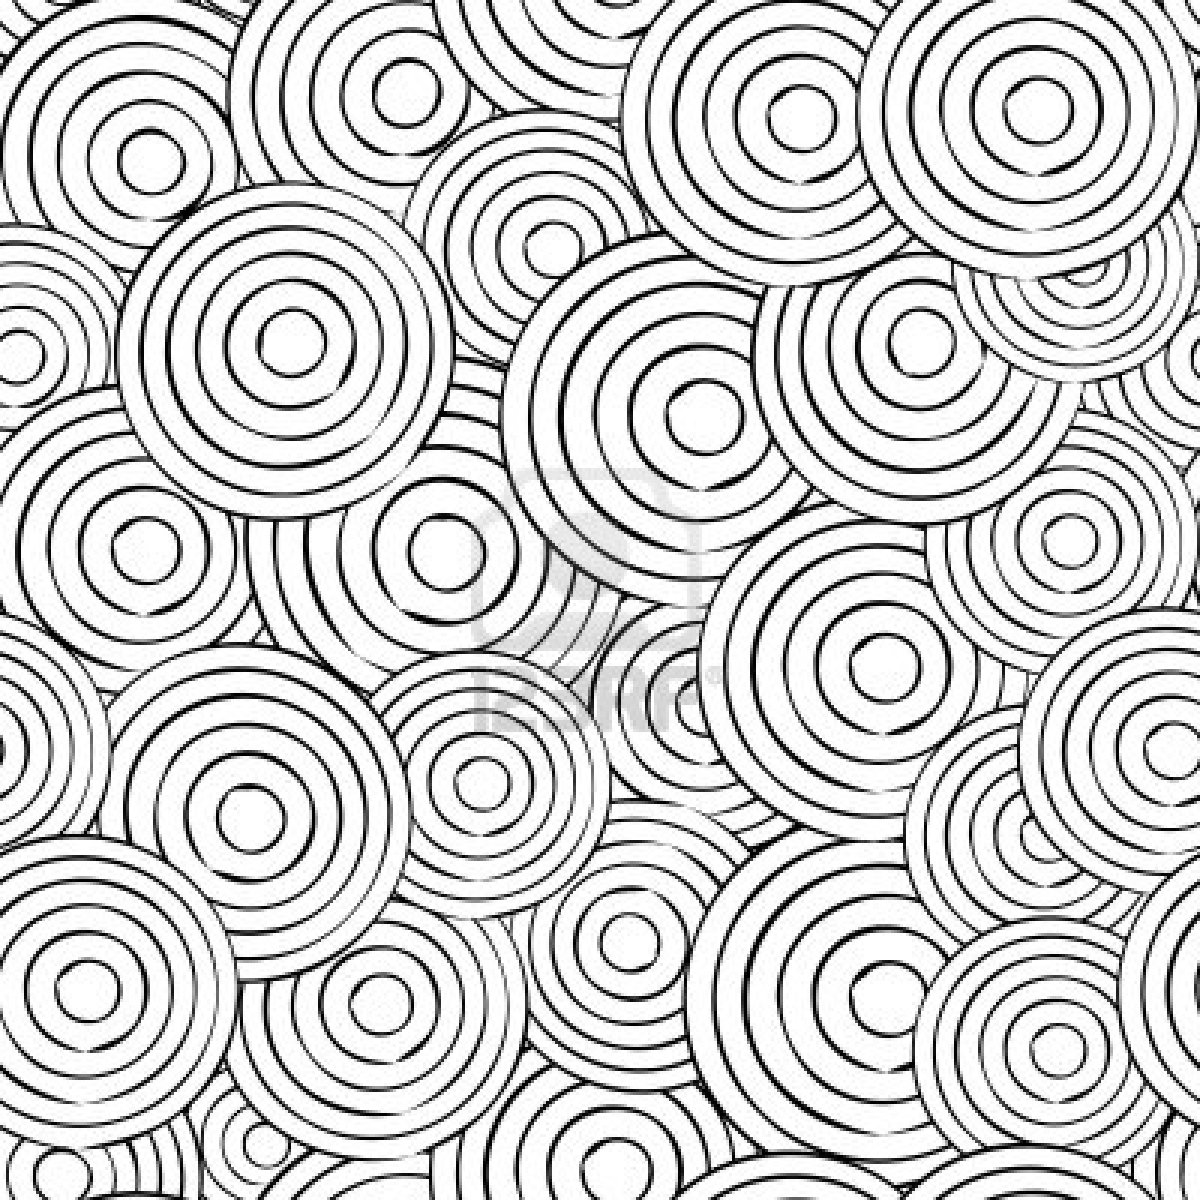 1200x1200 Coloring Pages Patterns